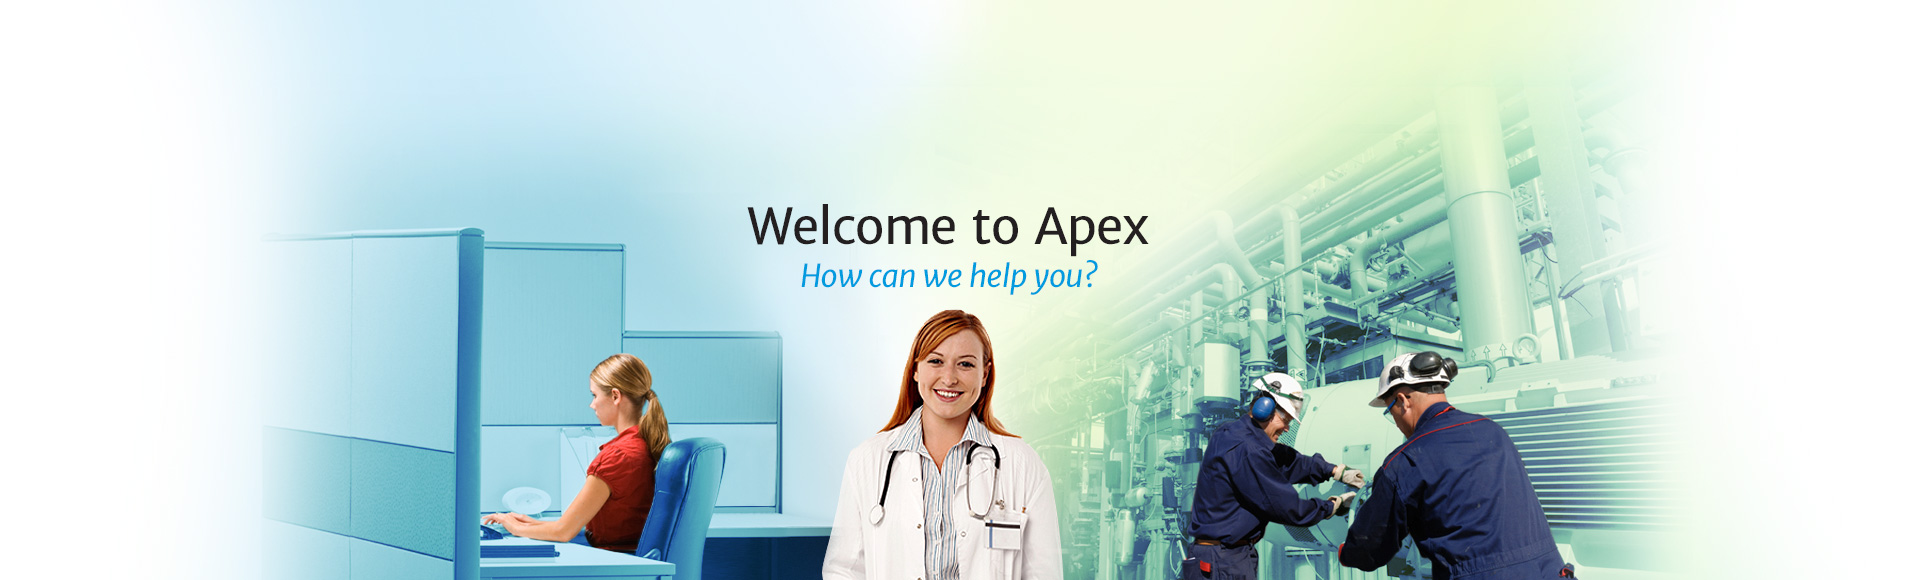 Apex Occupational Health and Wellness   Kitchener, Waterloo, Guelph ...